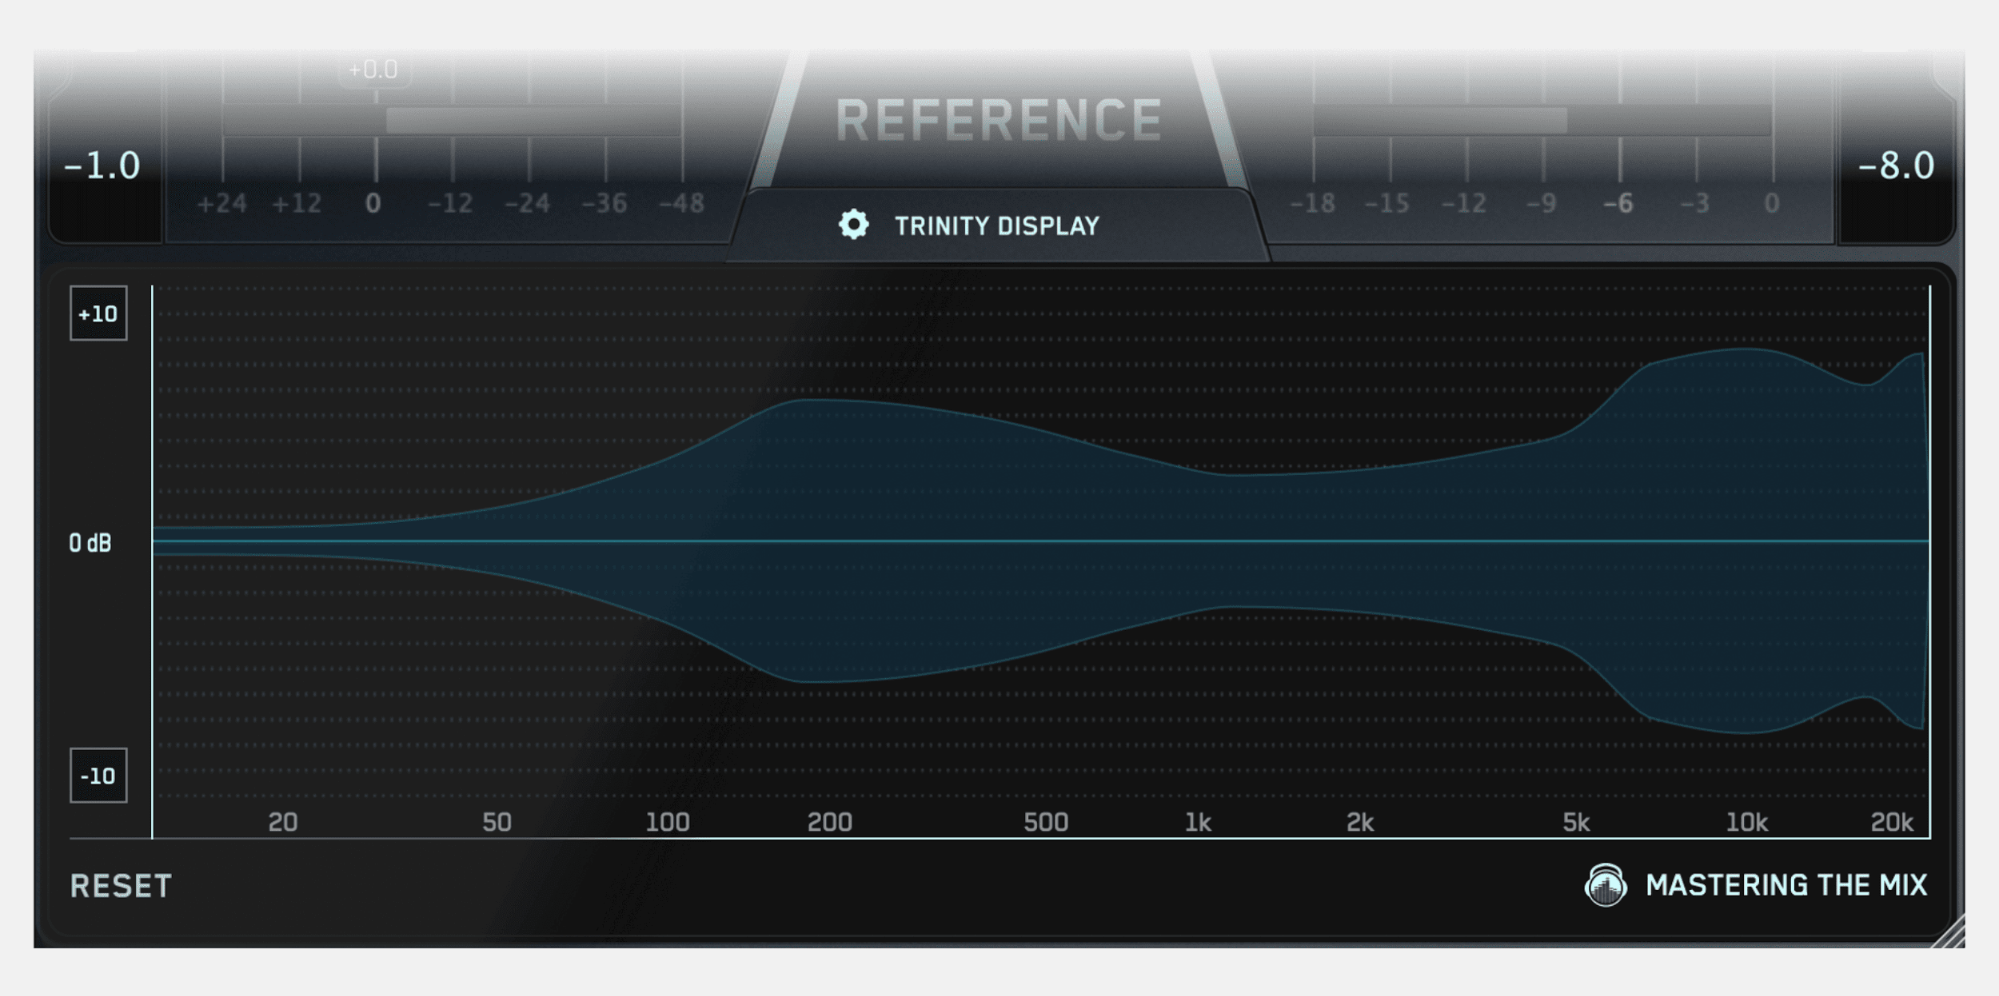 Stereo width of reference track